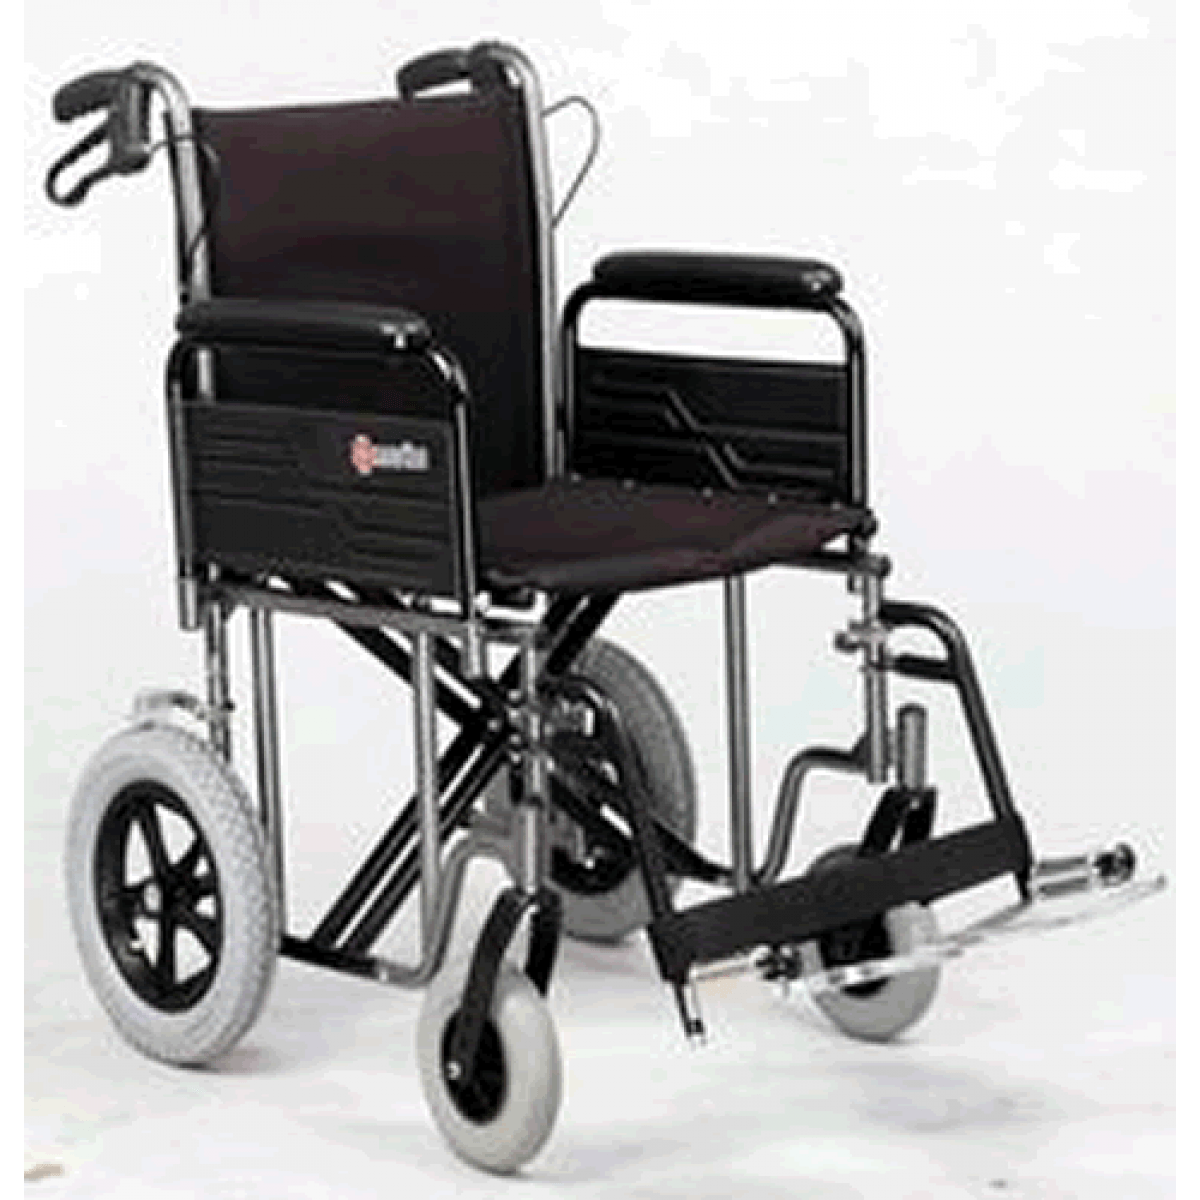 Transport Chairs Merits Bari Transport Chair On Sale With Unbeatable Prices